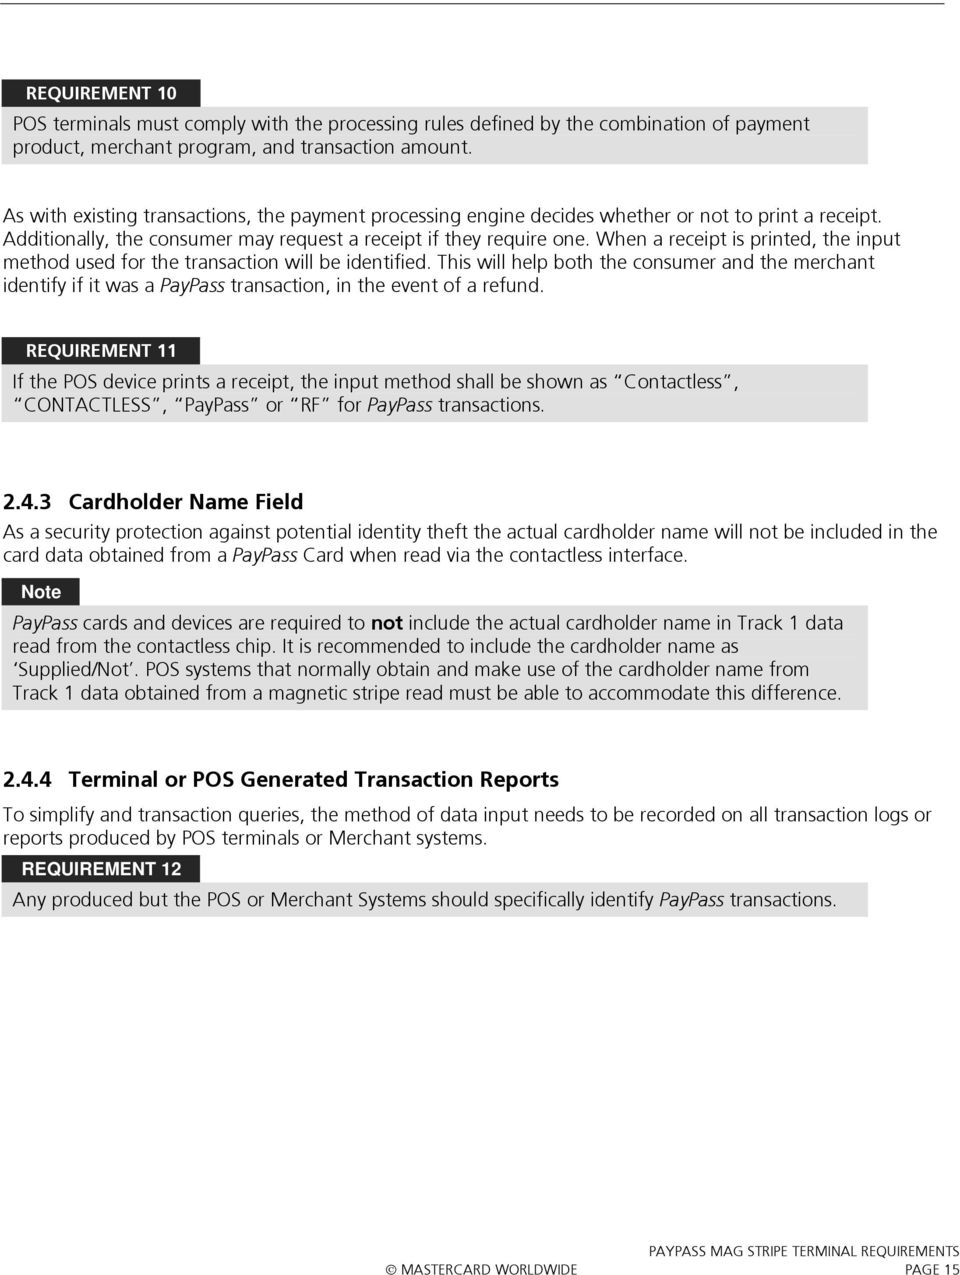 MasterCard  Terminal Implementation Requirements  PayPass - PDF